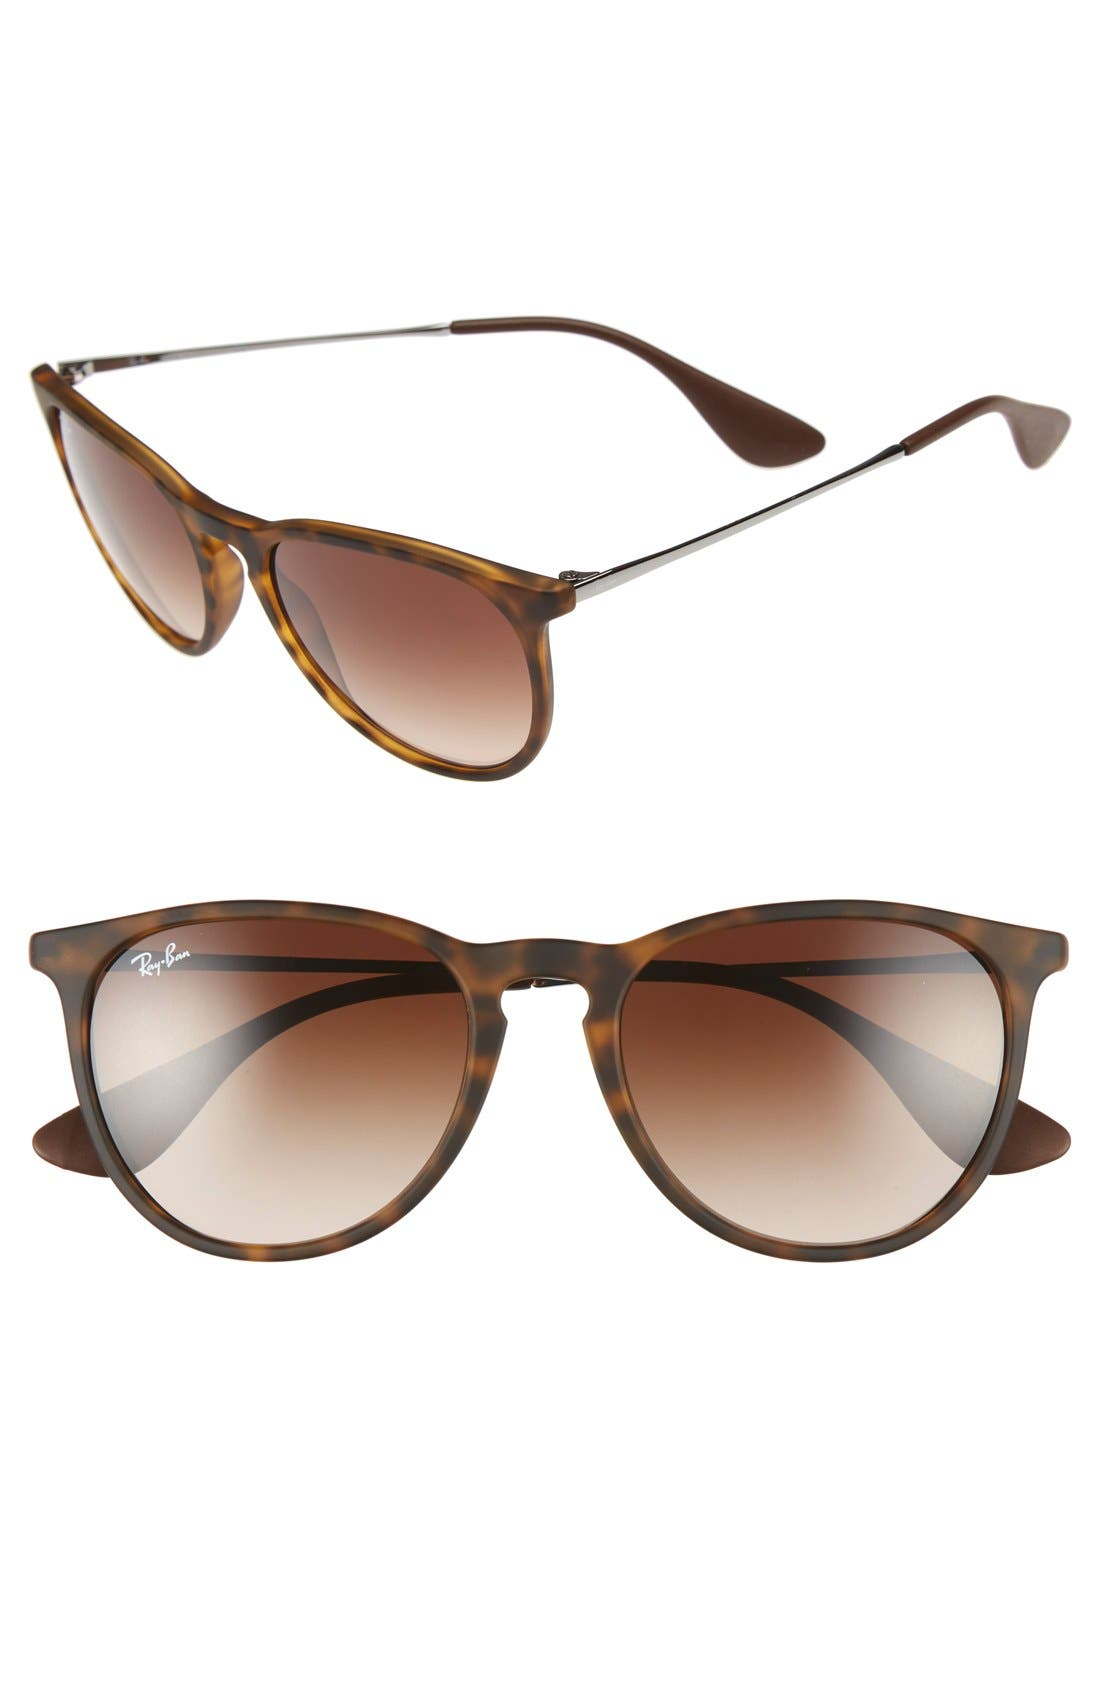 54mm Keyhole Sunglasses,                             Main thumbnail 1, color,                             Matte Havana